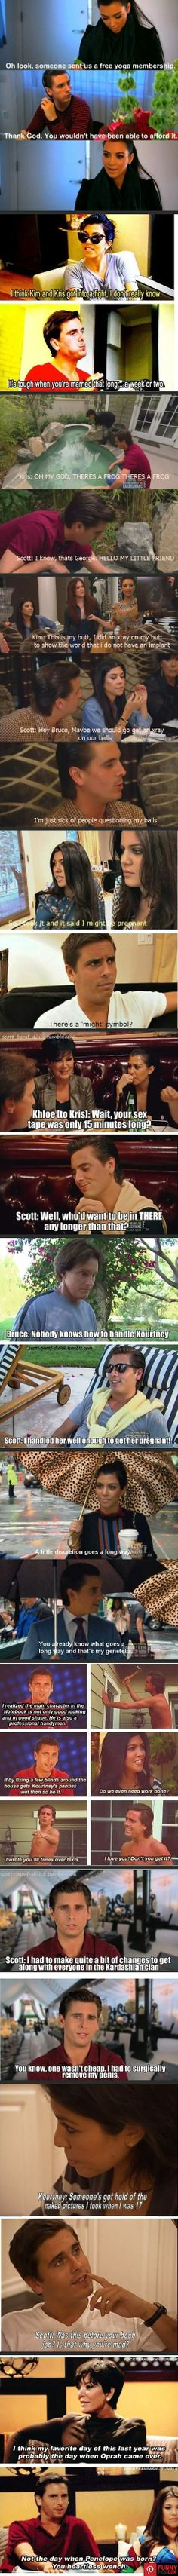 Scott is probably the only person on that show who isn't completely stupid.